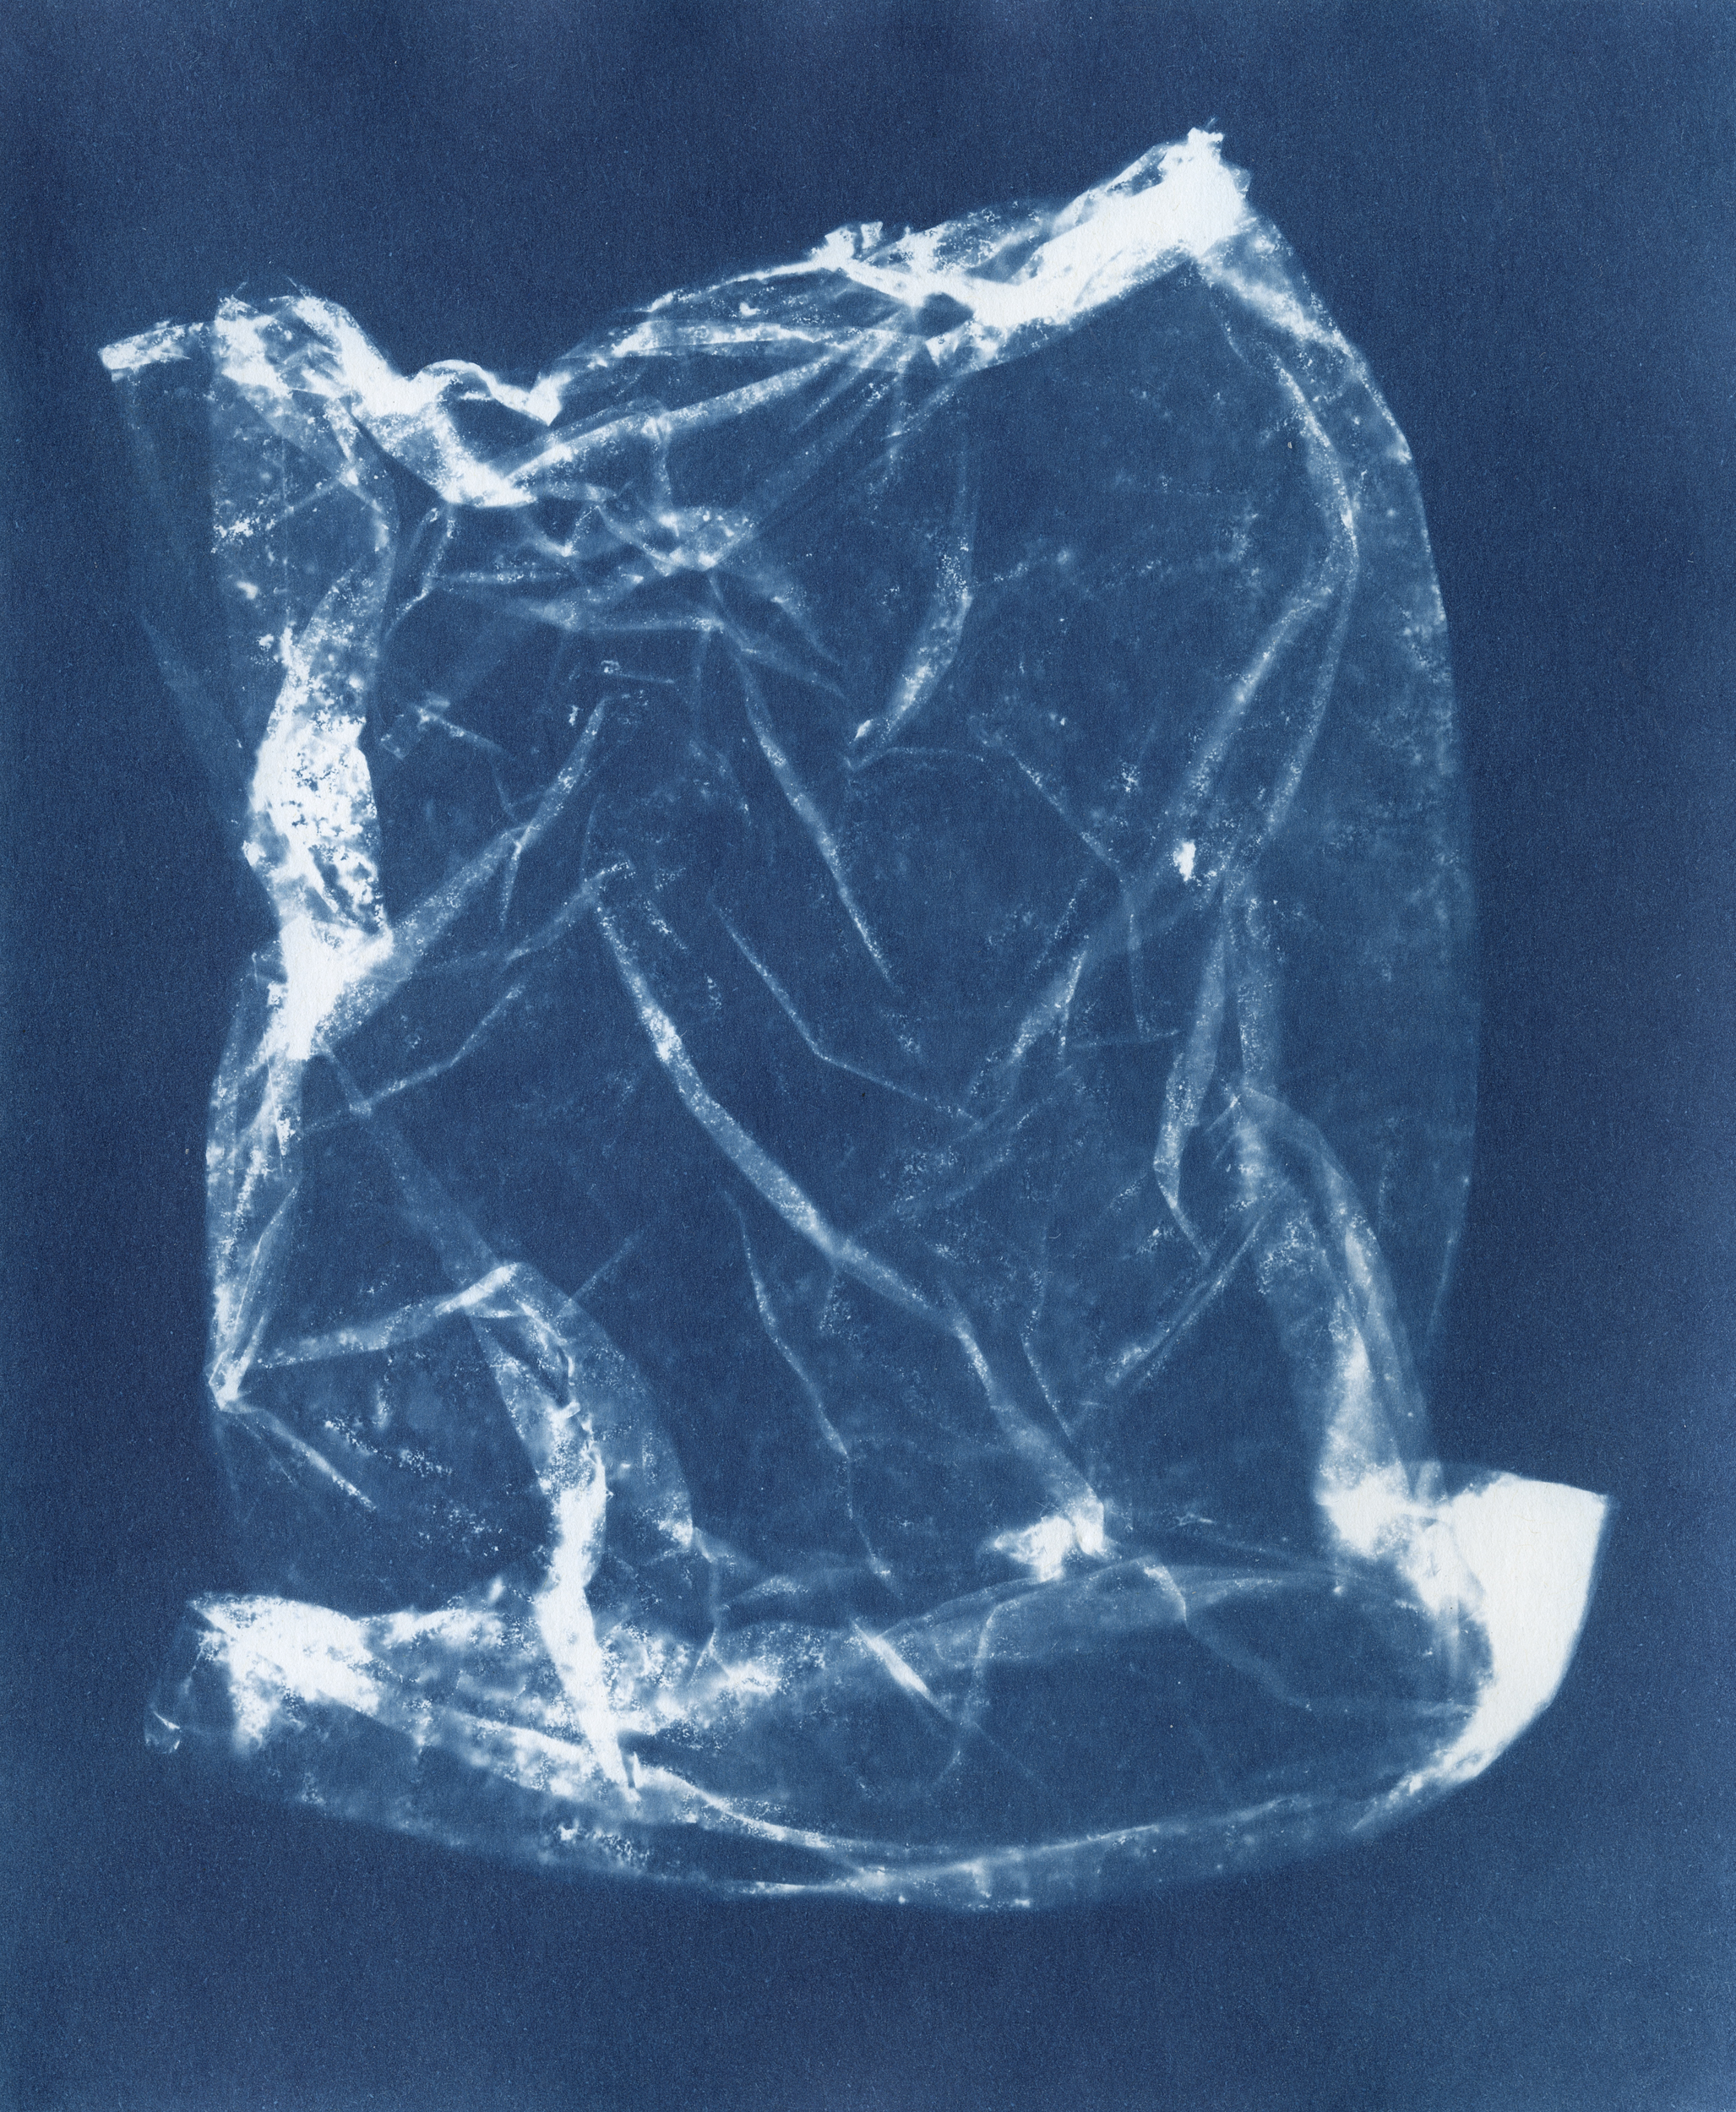 Ellenwood_Cyanotype_27.jpg